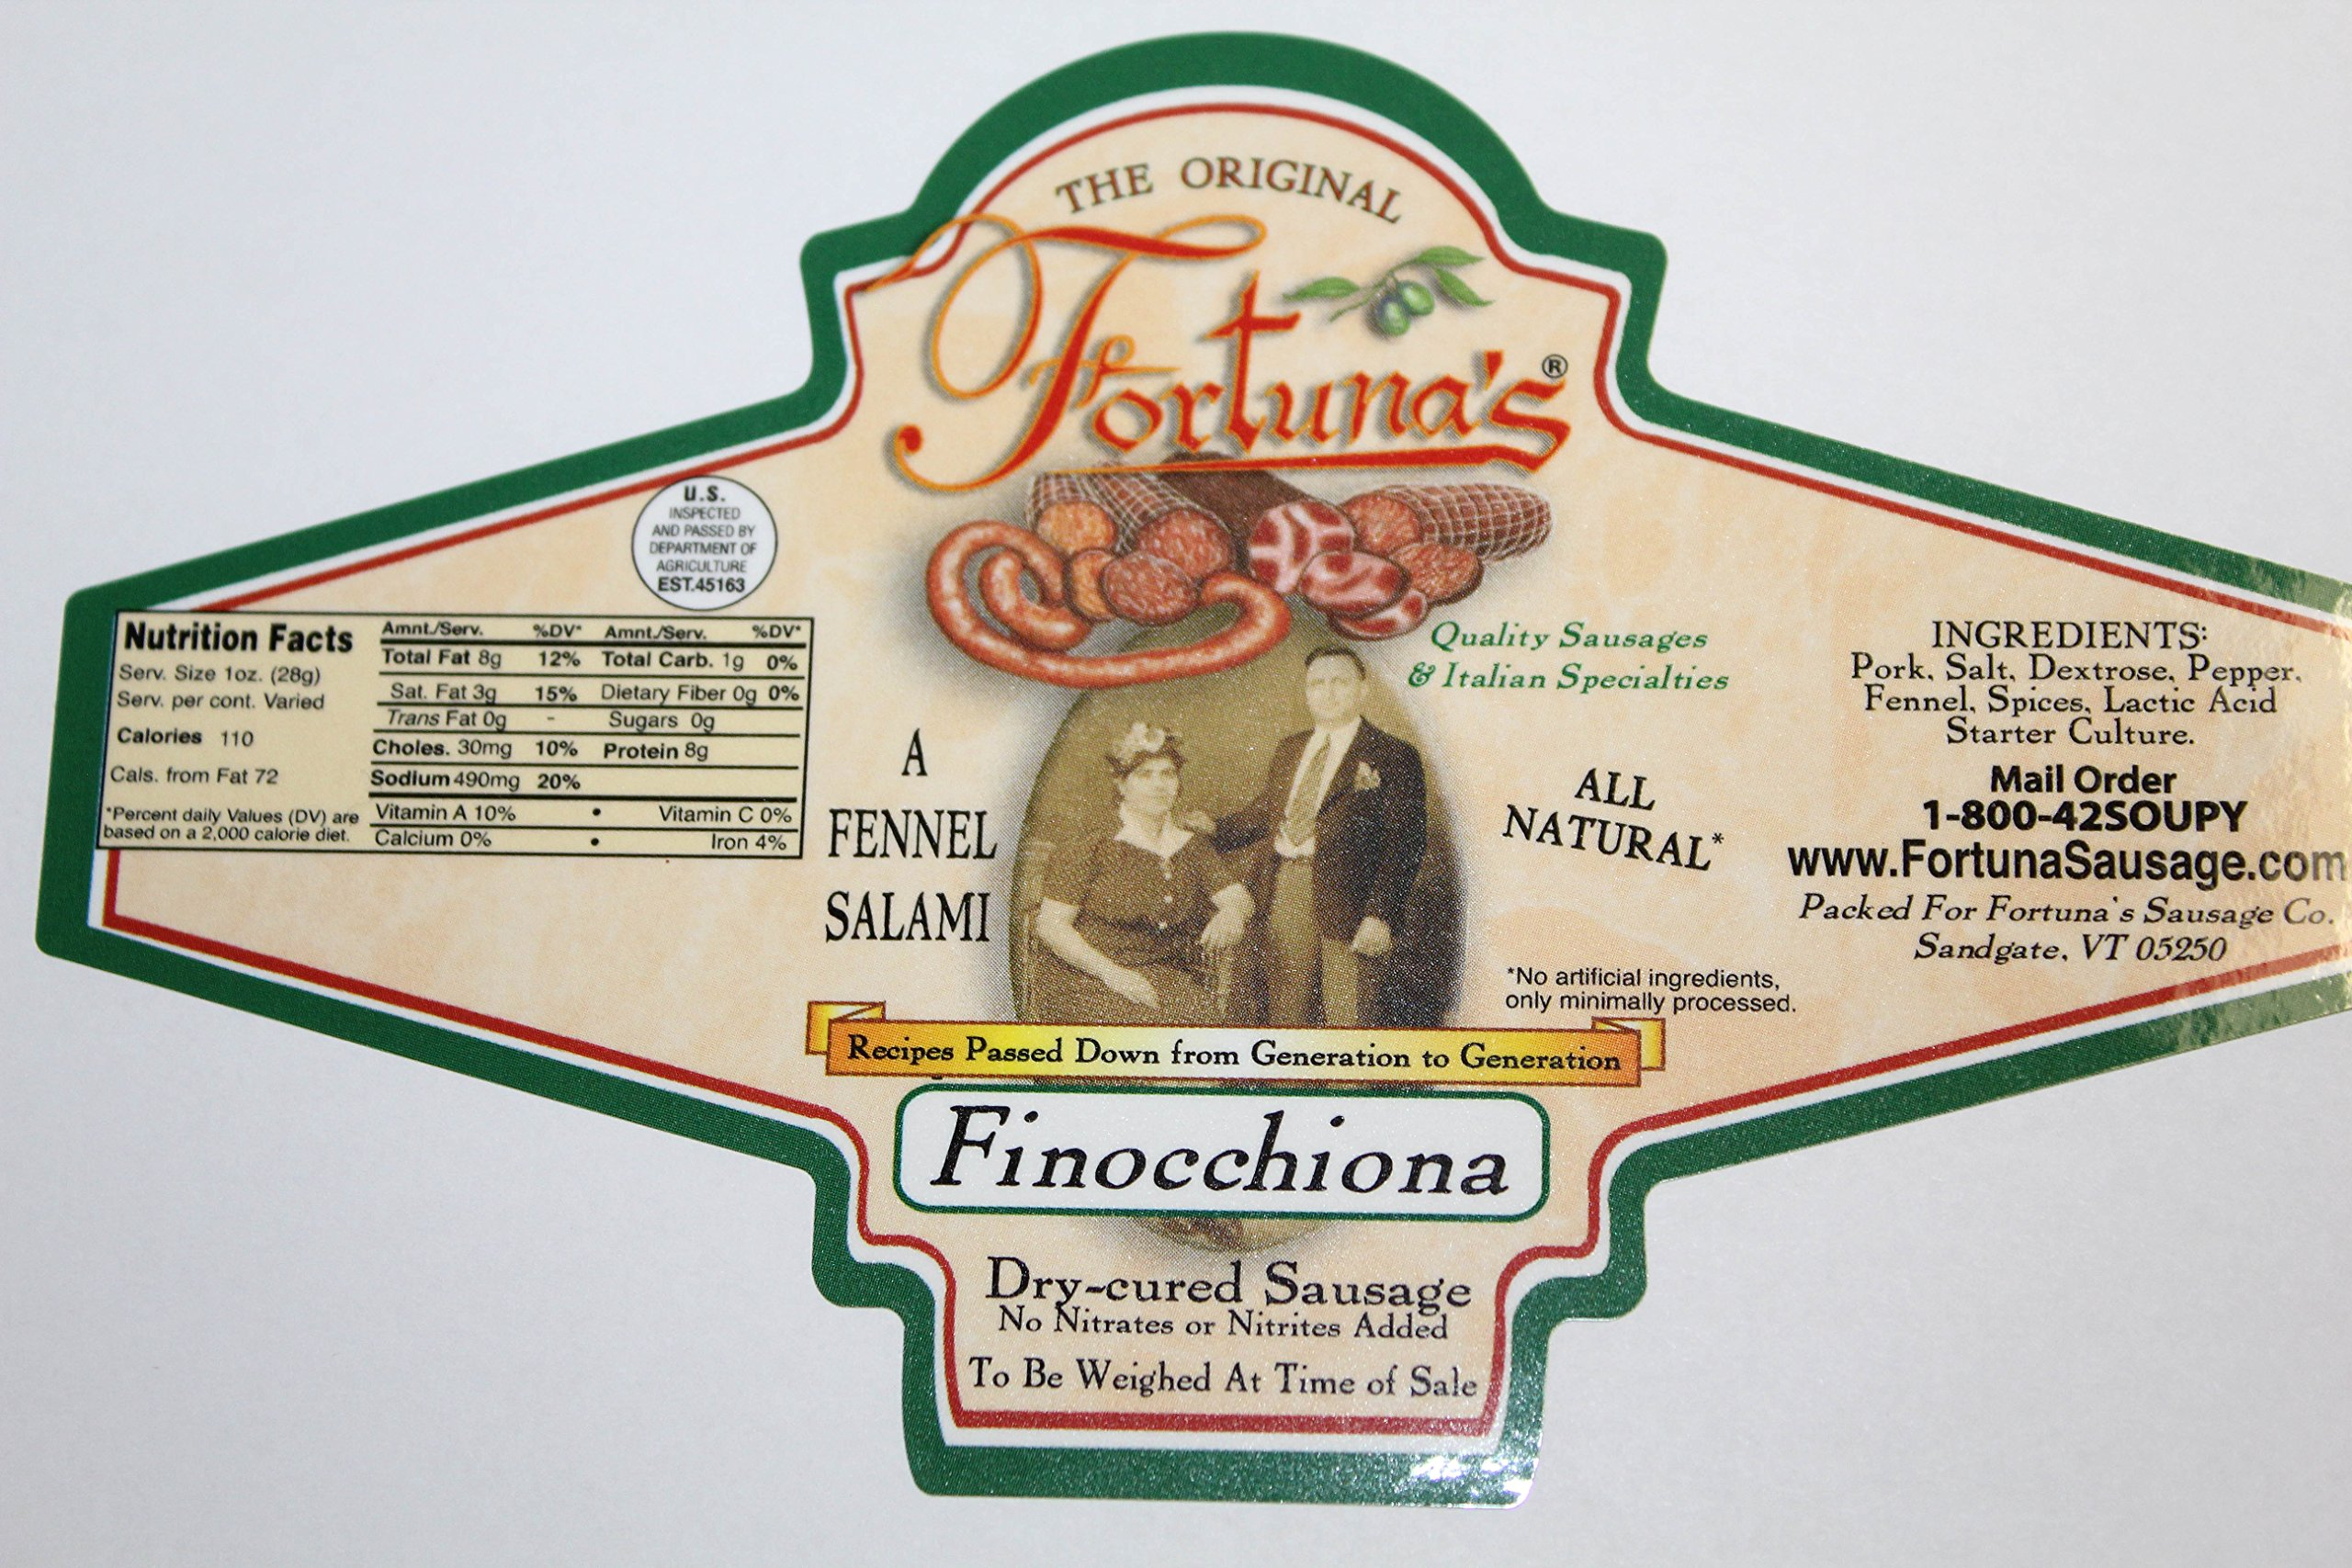 All Natural Fennel Salami- Nitrate Free/Gluten Free (Finocchiona) by Fortuna's